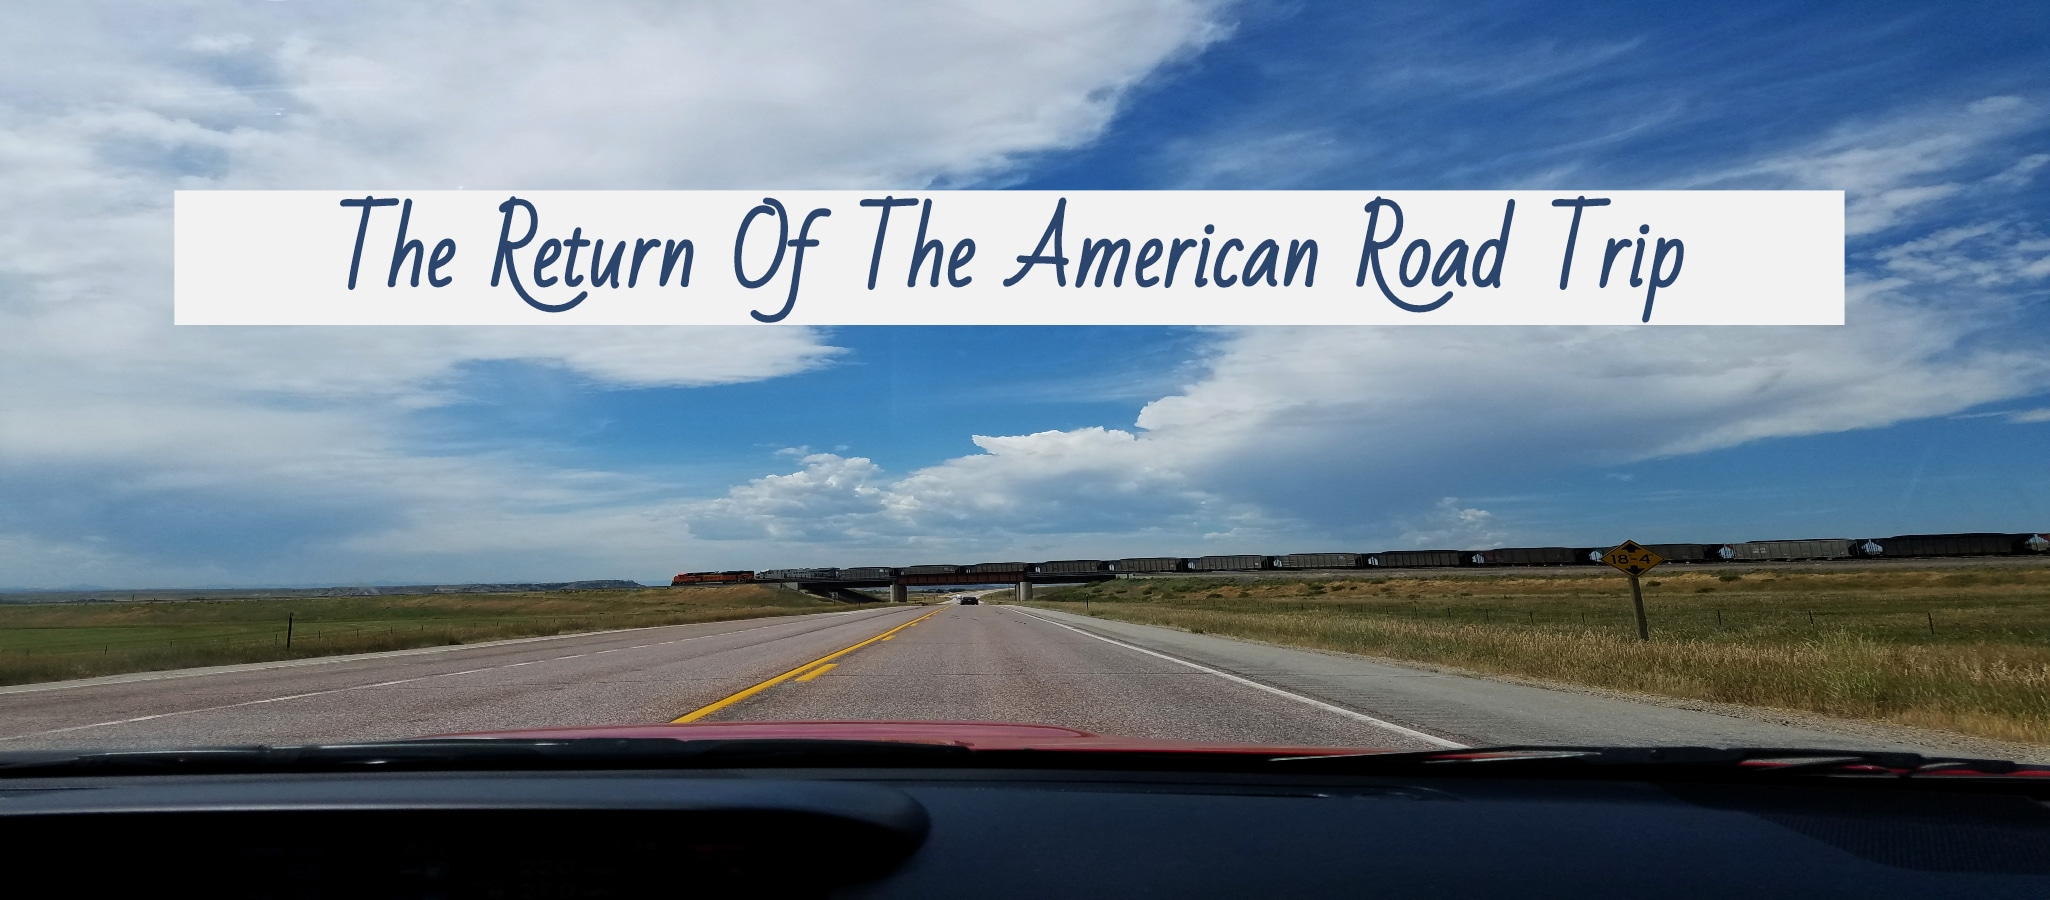 The Return Of The American Road Trip